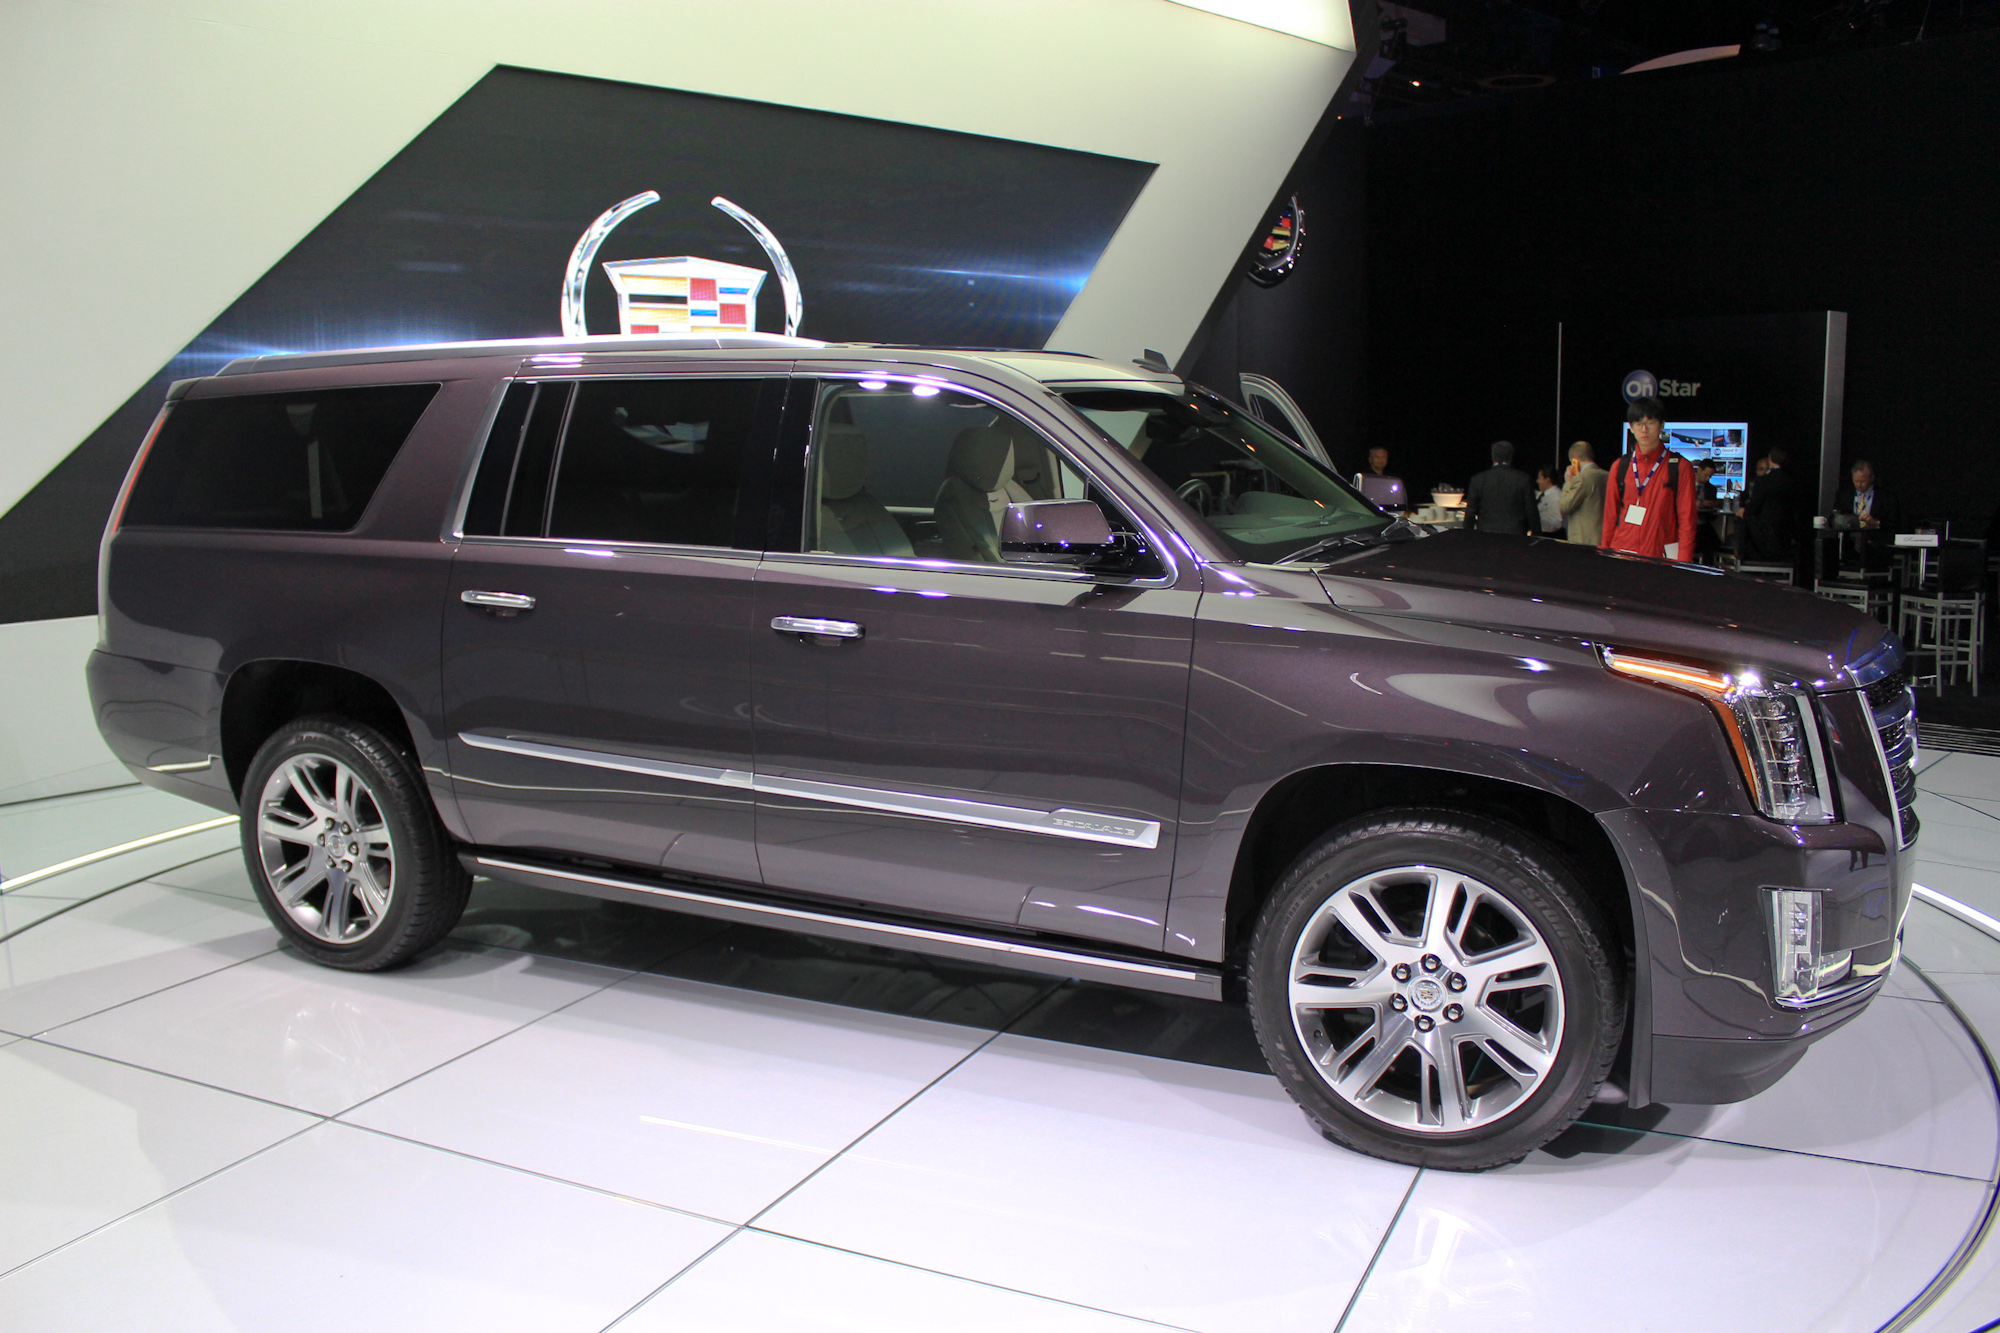 navigator escalade full lincoln promo gallery image features view cadillac truck photo poll or